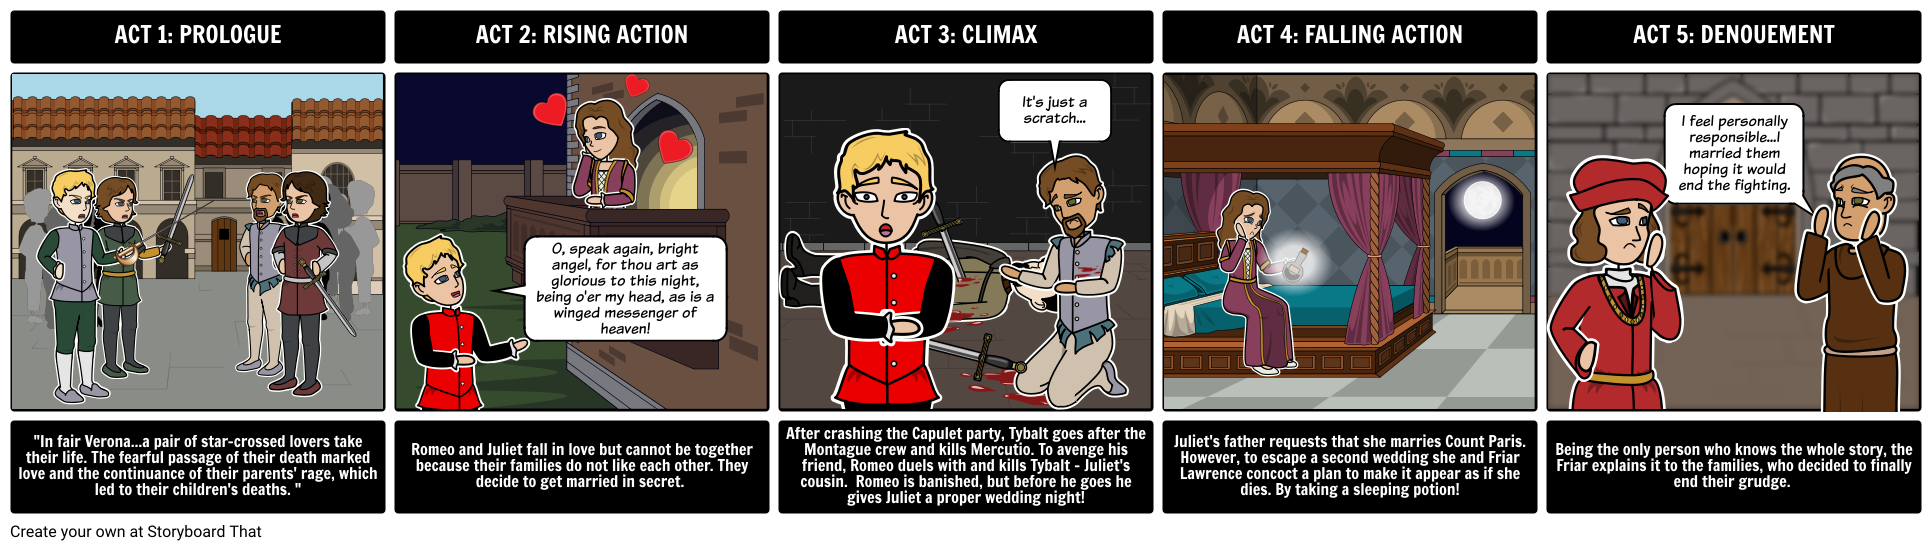 Storyboard For The Tragedy Of Romeo And Juliet By William Shakespeare Include Tragic Lesson Plan Characters Summary Act 2 Scene 1